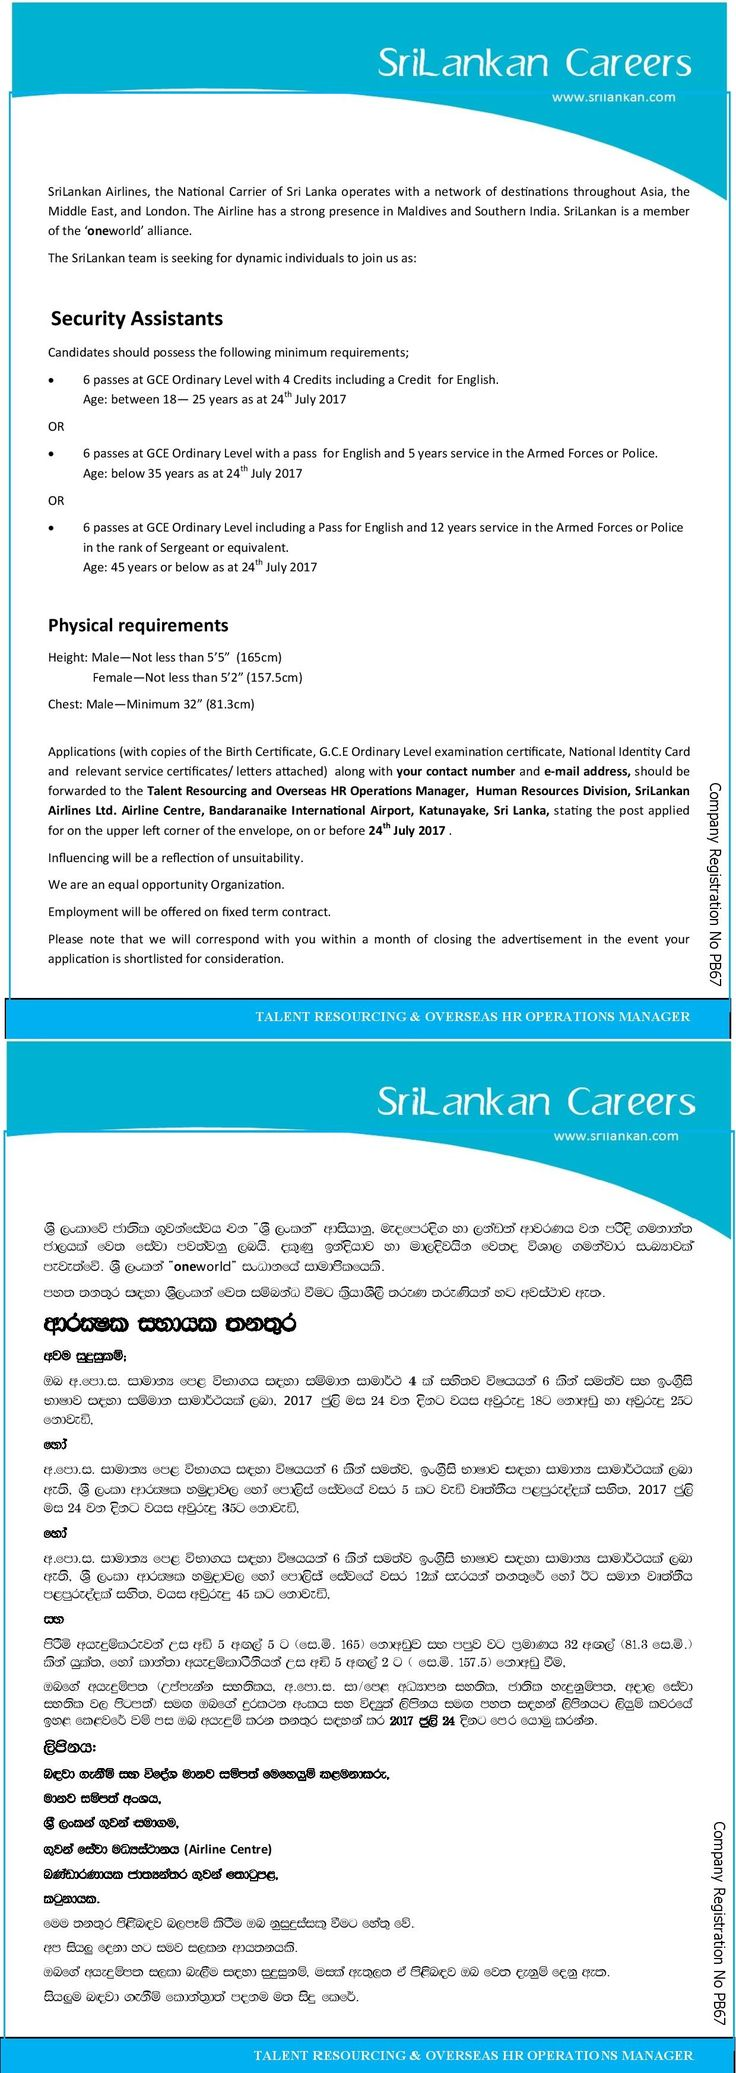 Security Assistants at SriLankan Airlines | CareerFirst